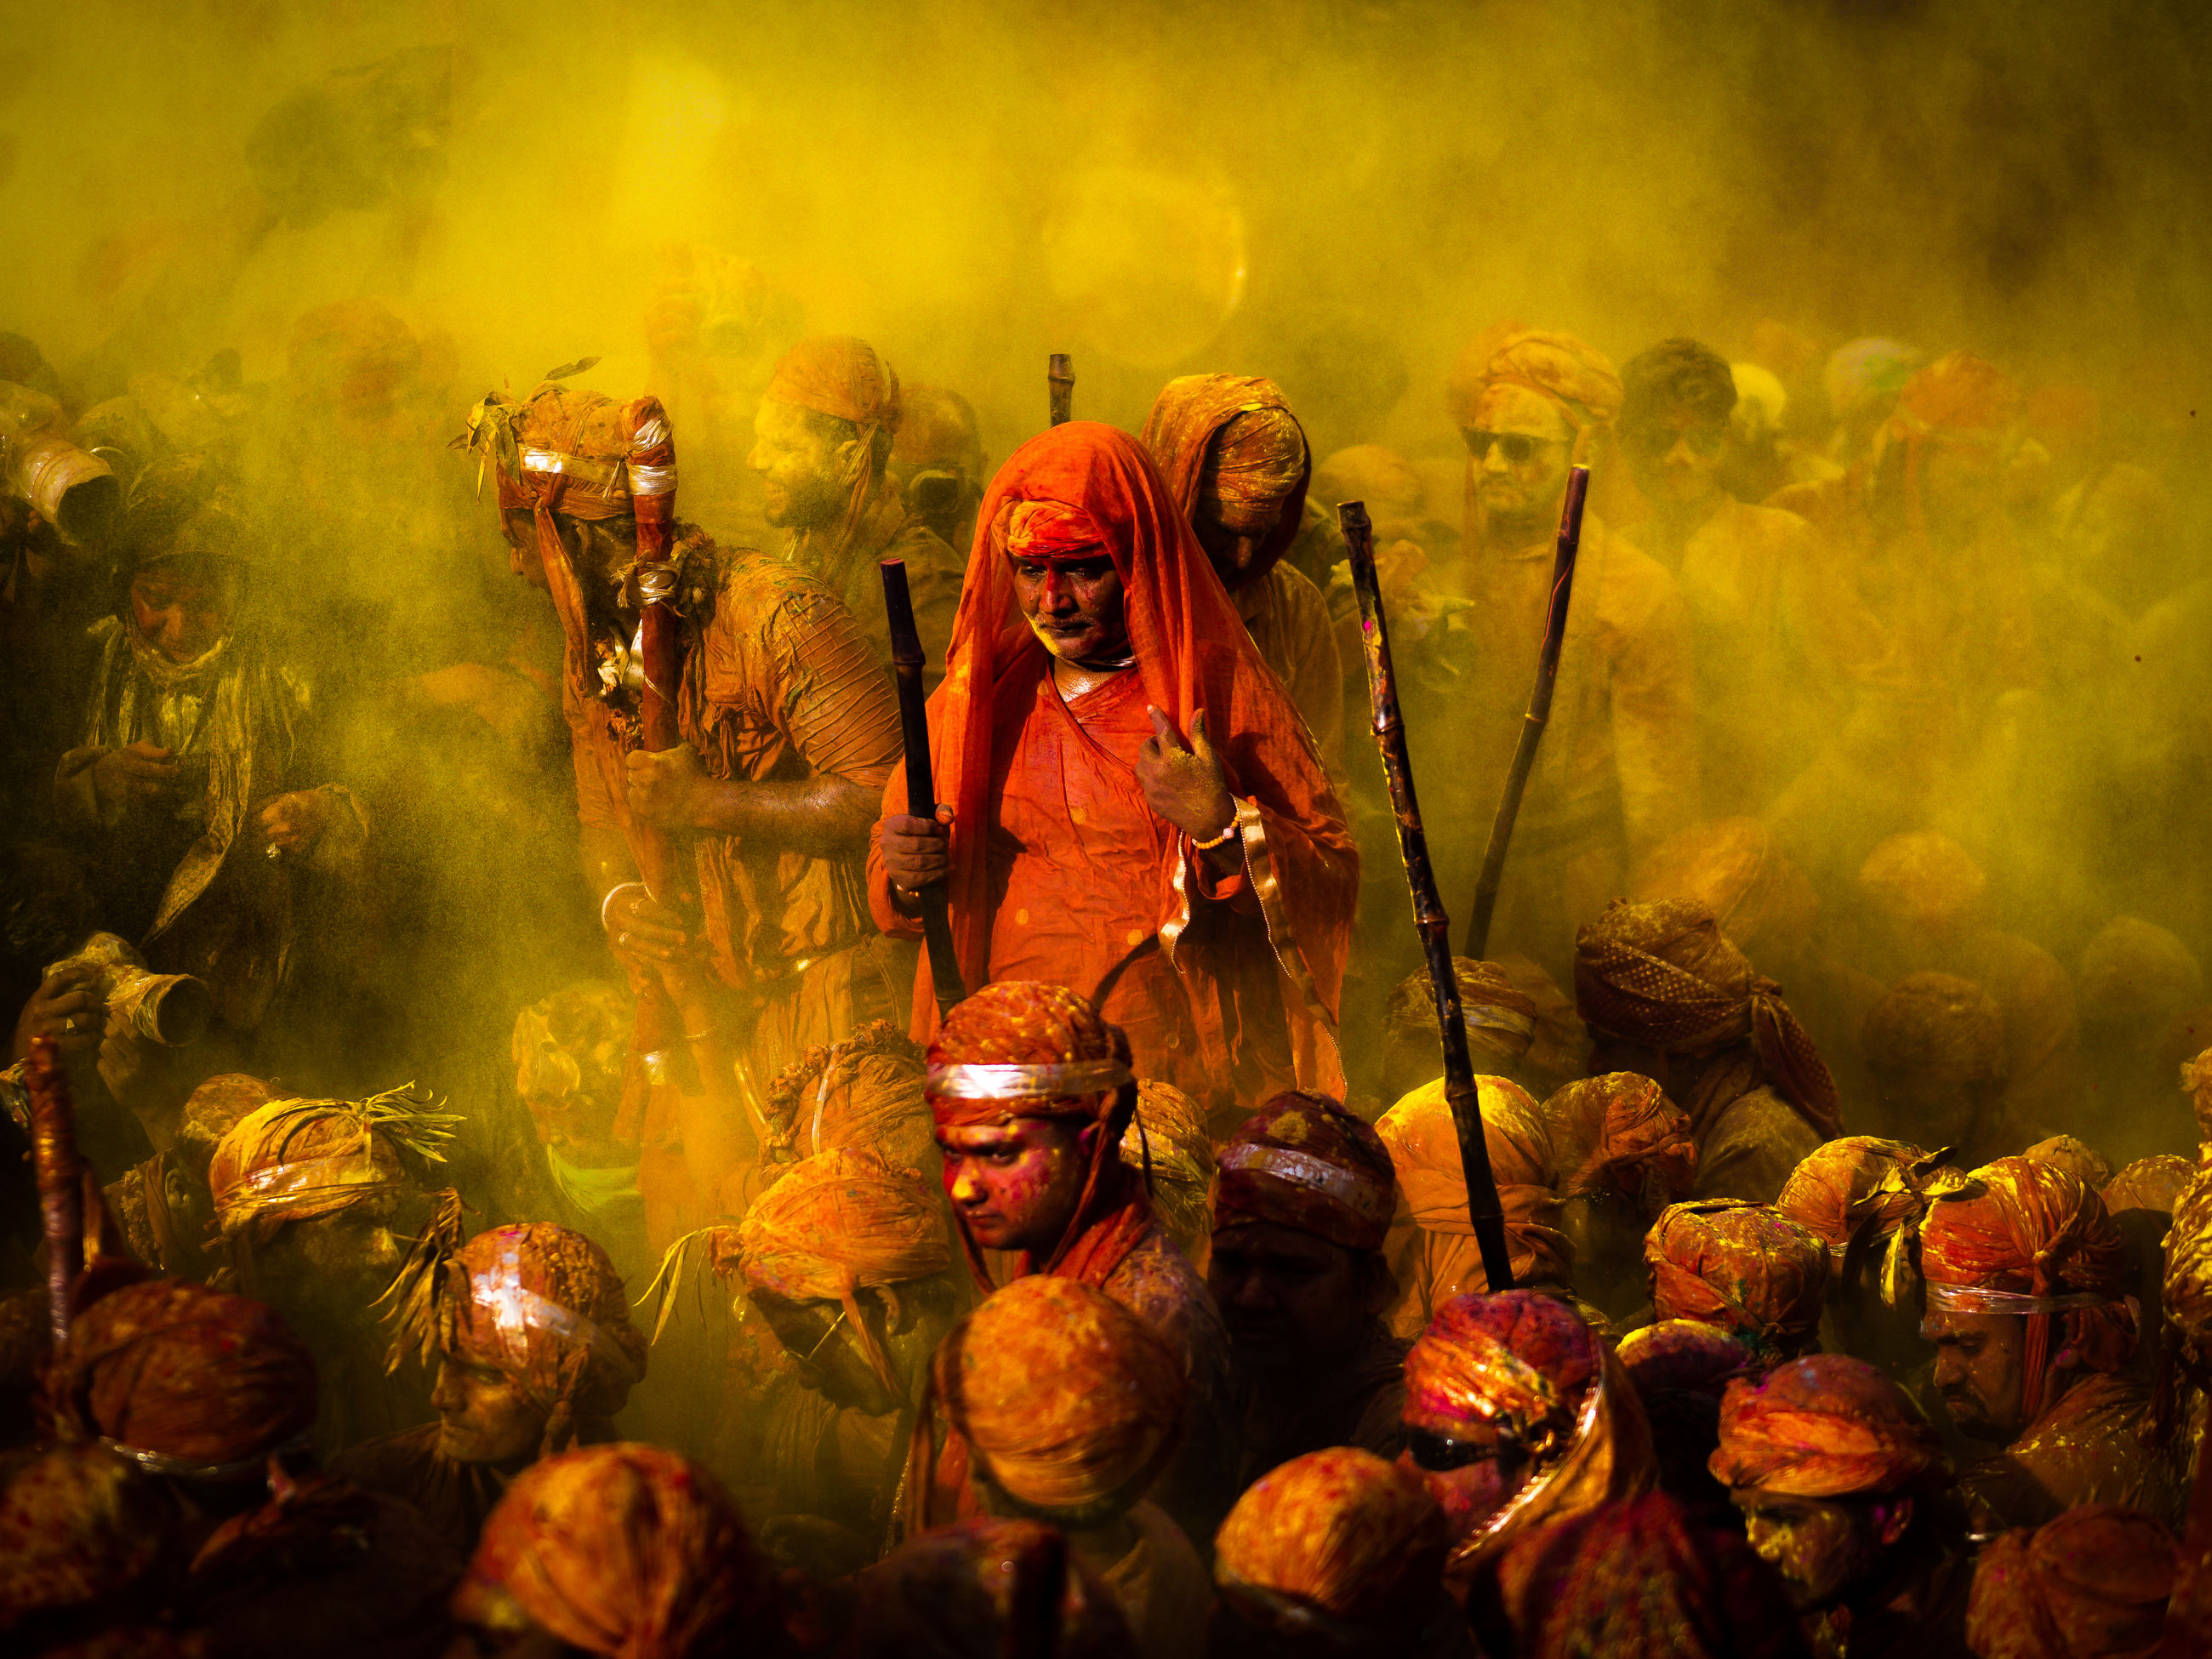 group of people, smoke - physical structure, celebration, real people, traditional festival, crowd, large group of people, adult, men, togetherness, belief, religion, holi, motion, day, event